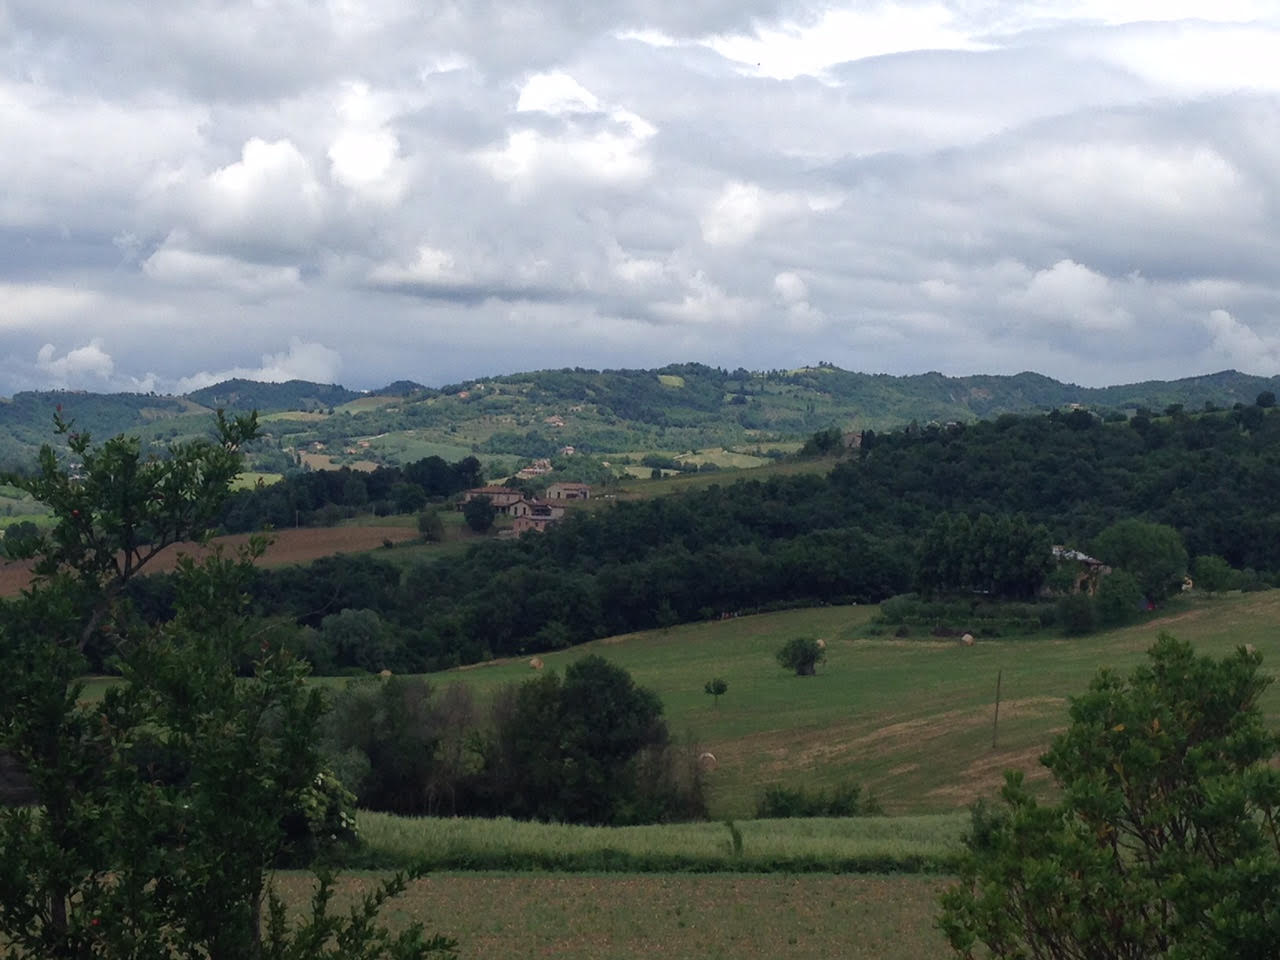 Civitella Ranieri, May 2015 - June 2015